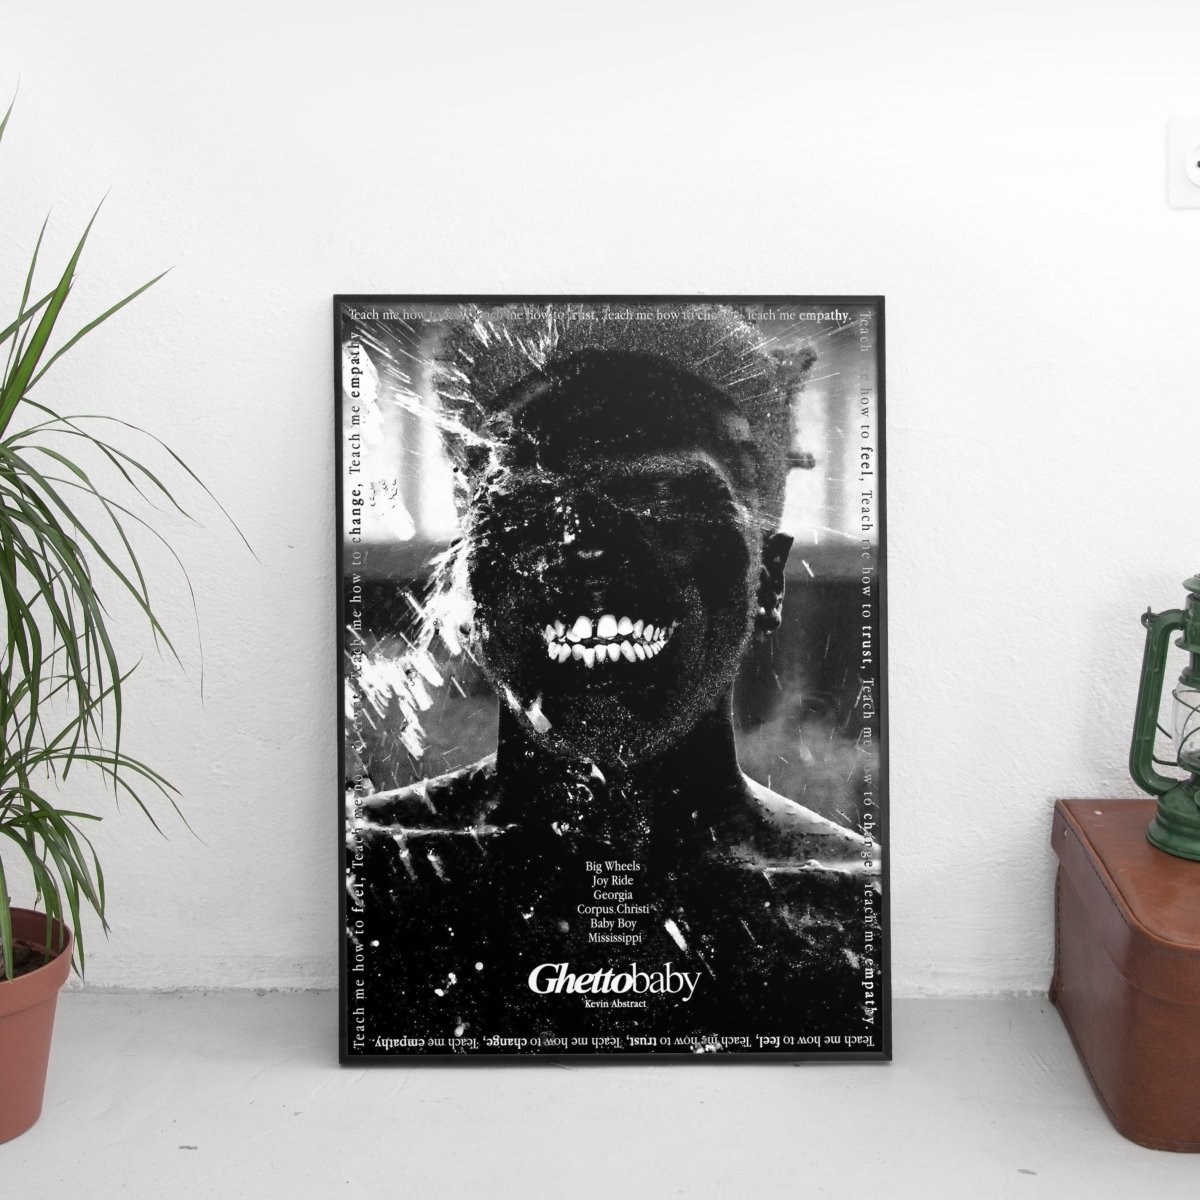 Kevin Abstract - Ghettobaby Poster